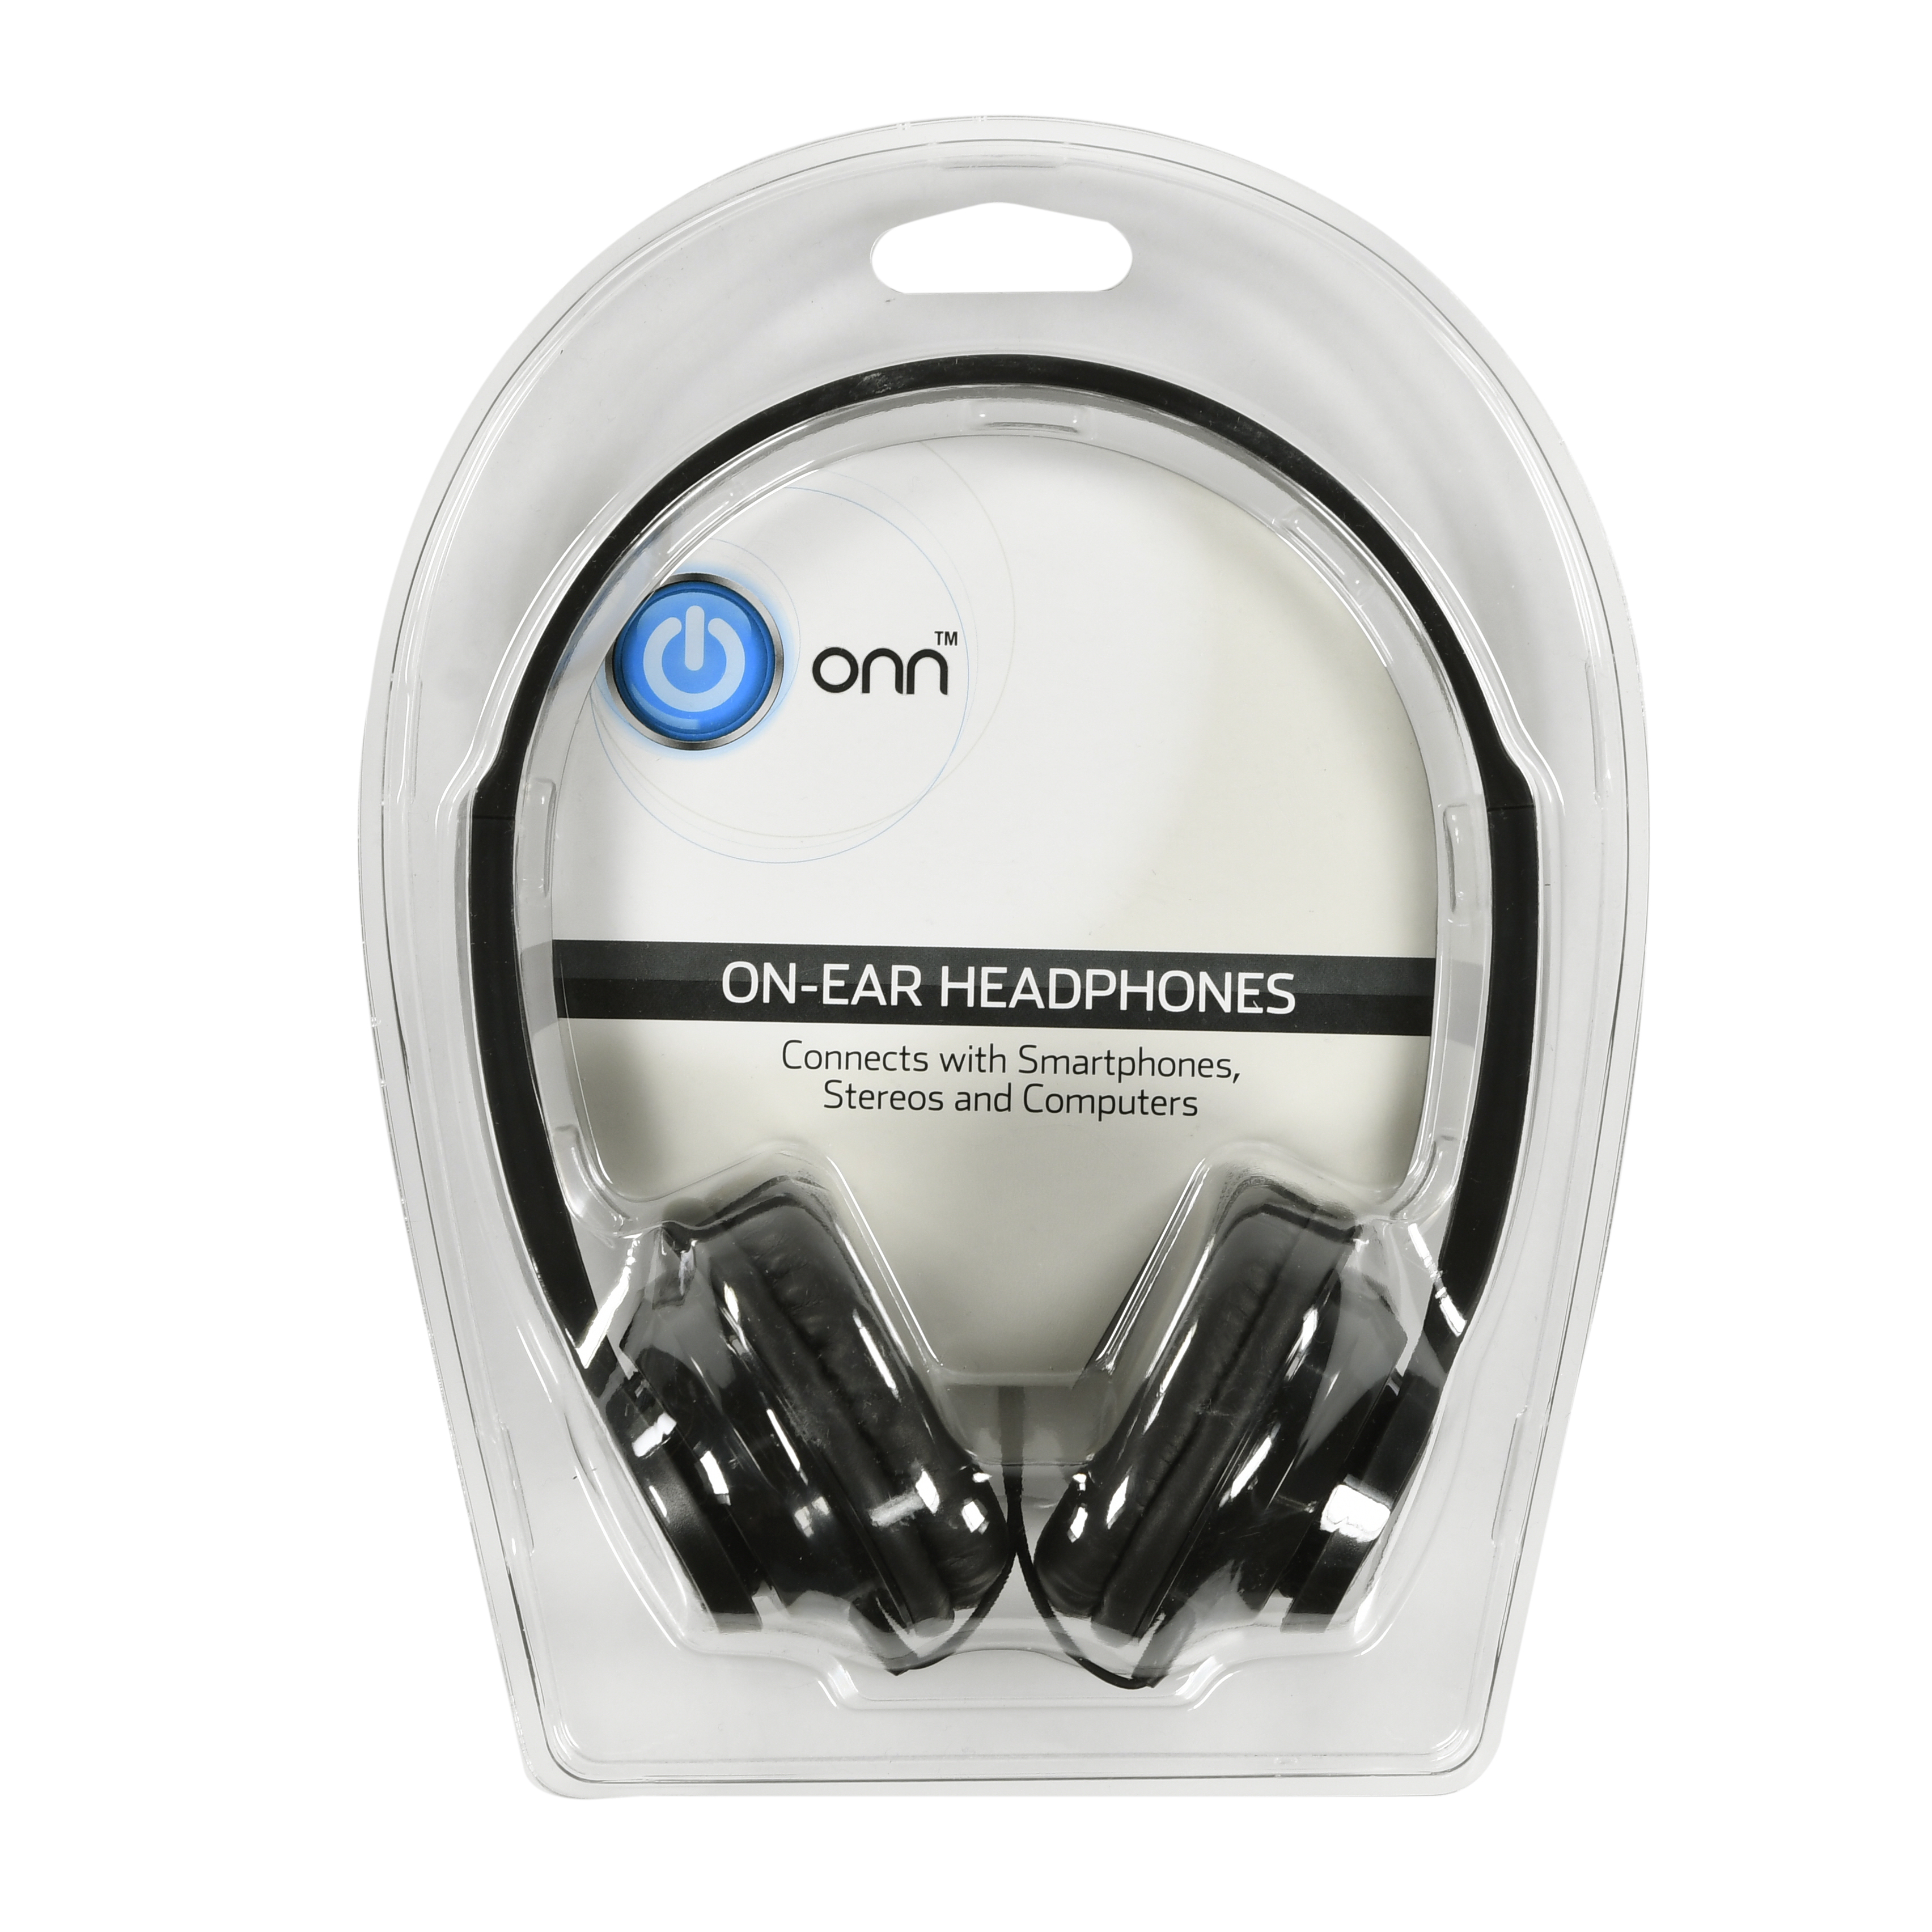 Onn by Walmart On-ear Headphones, Black